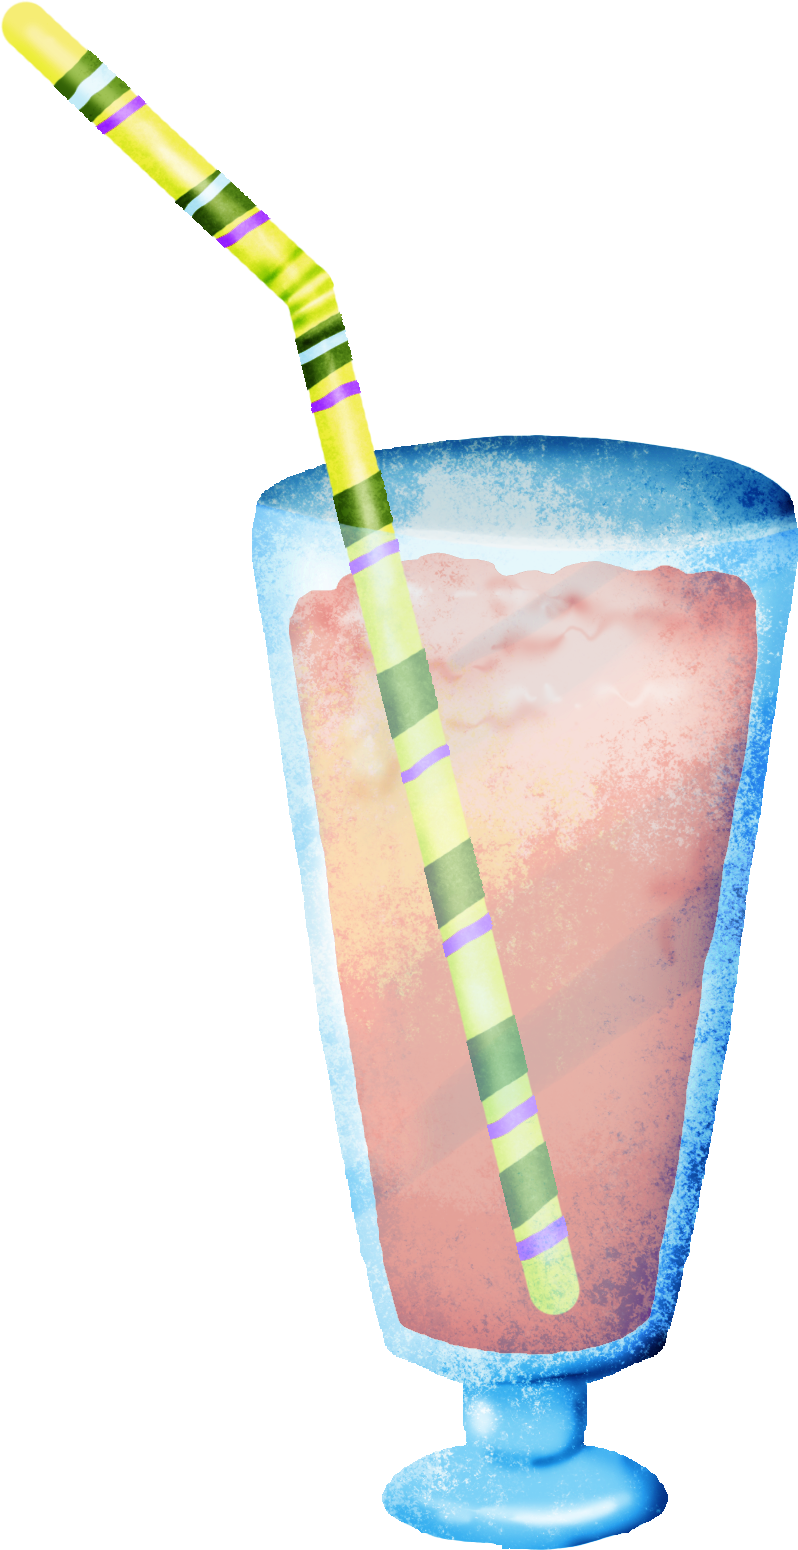 Drink with straw png. Juice non alcoholic drinking